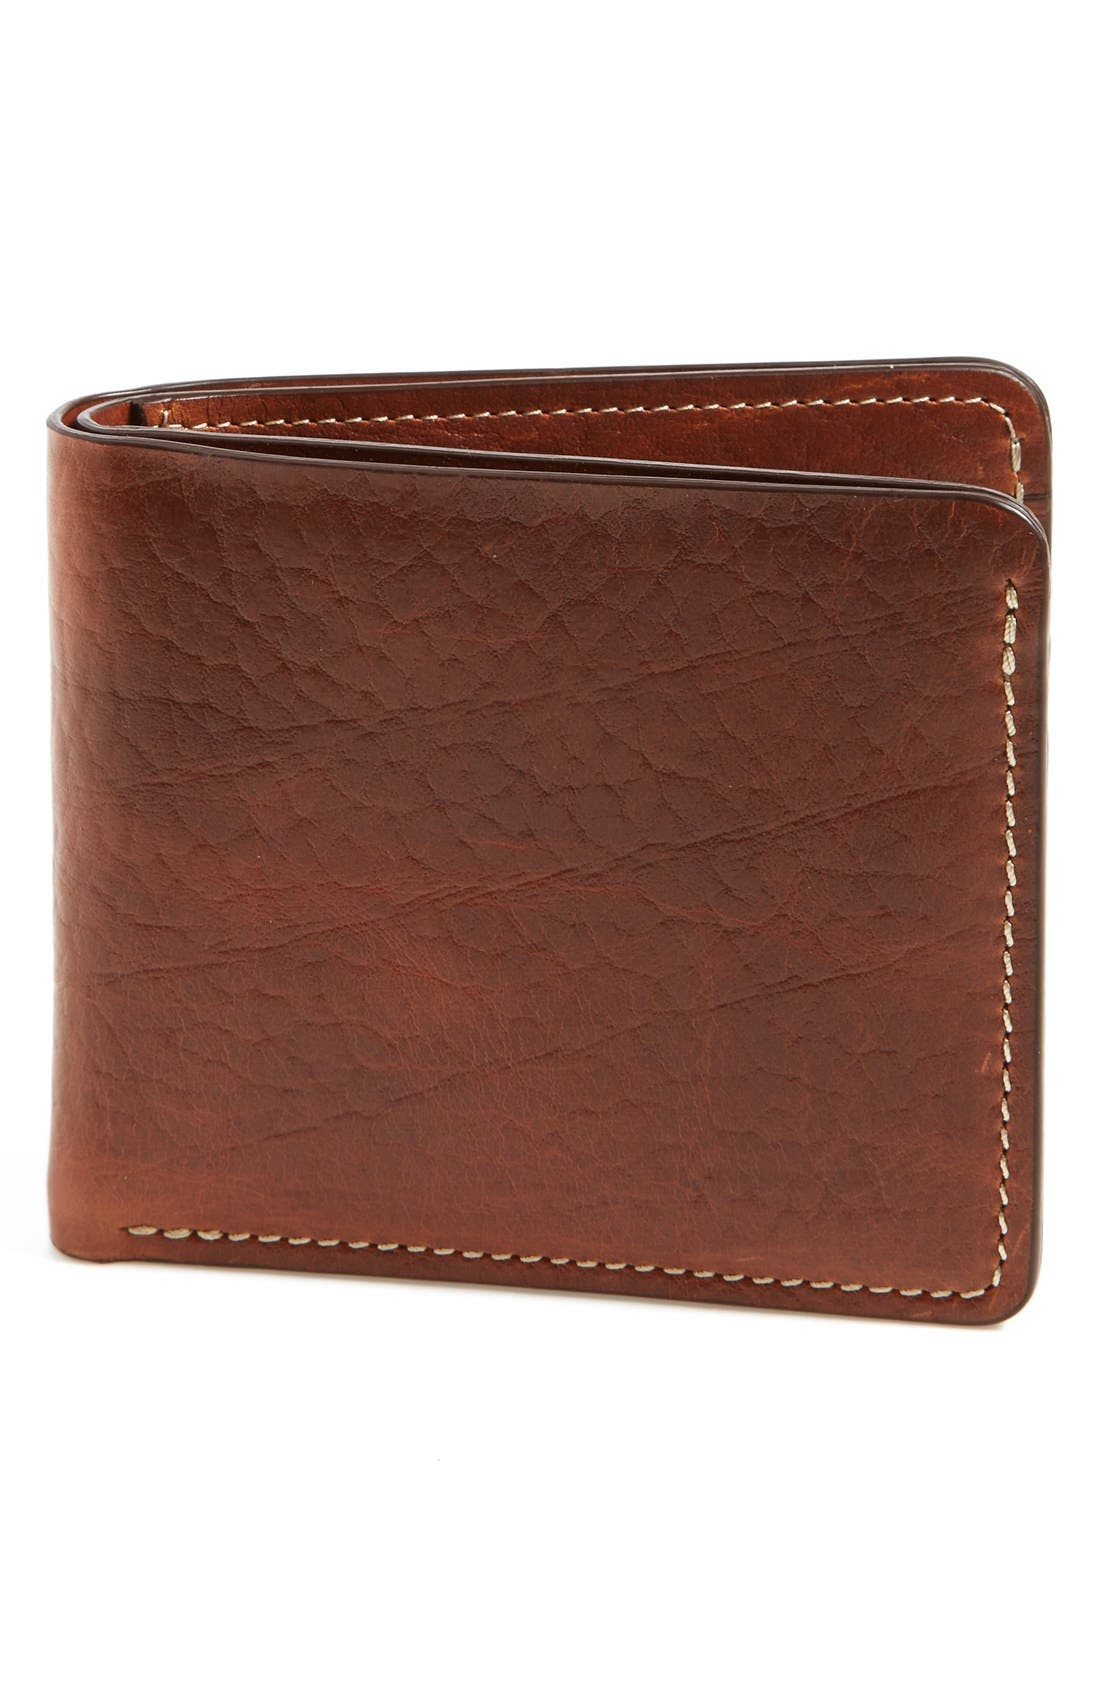 Trask 'Jackson' Bison Leather Wallet